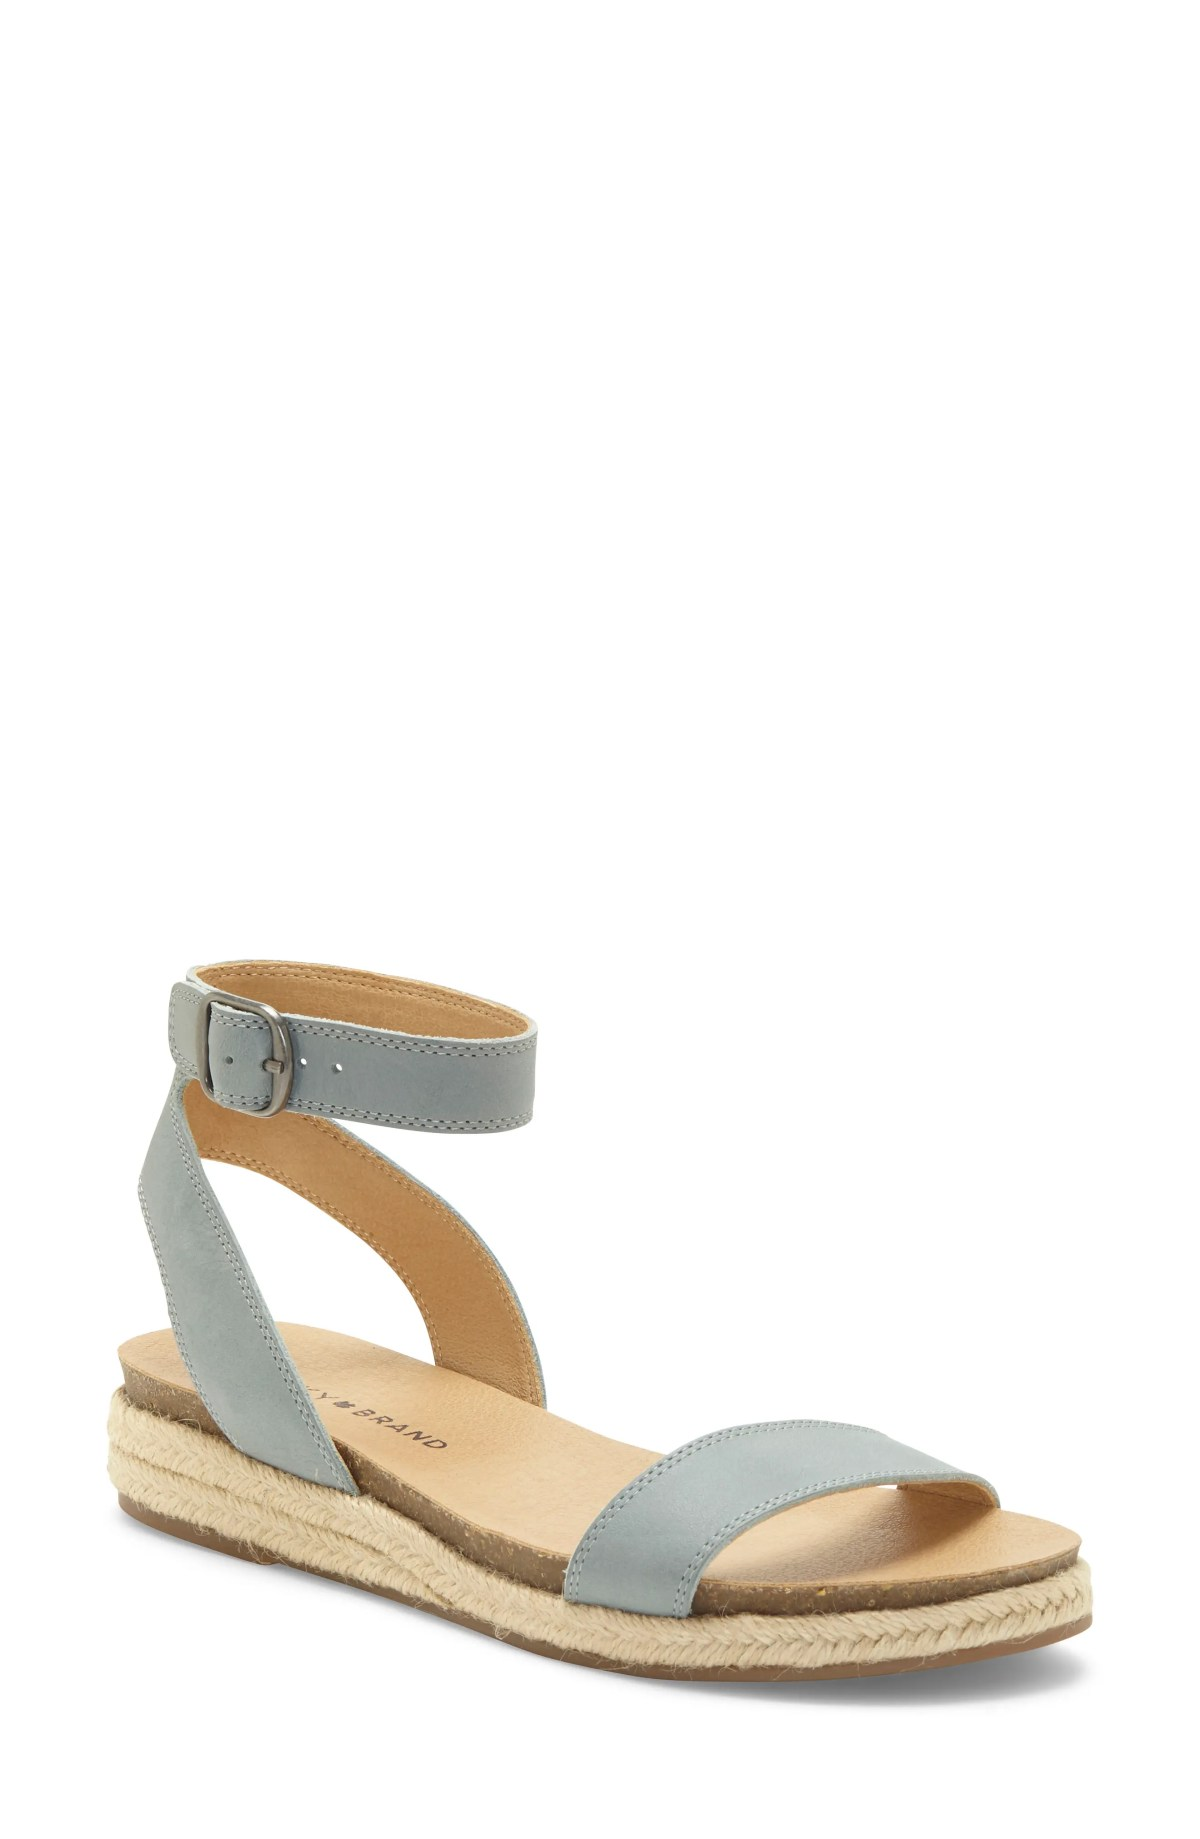 LUCKY BRAND Garston Espadrille Sandal, Main, color, LEAD LEATHER